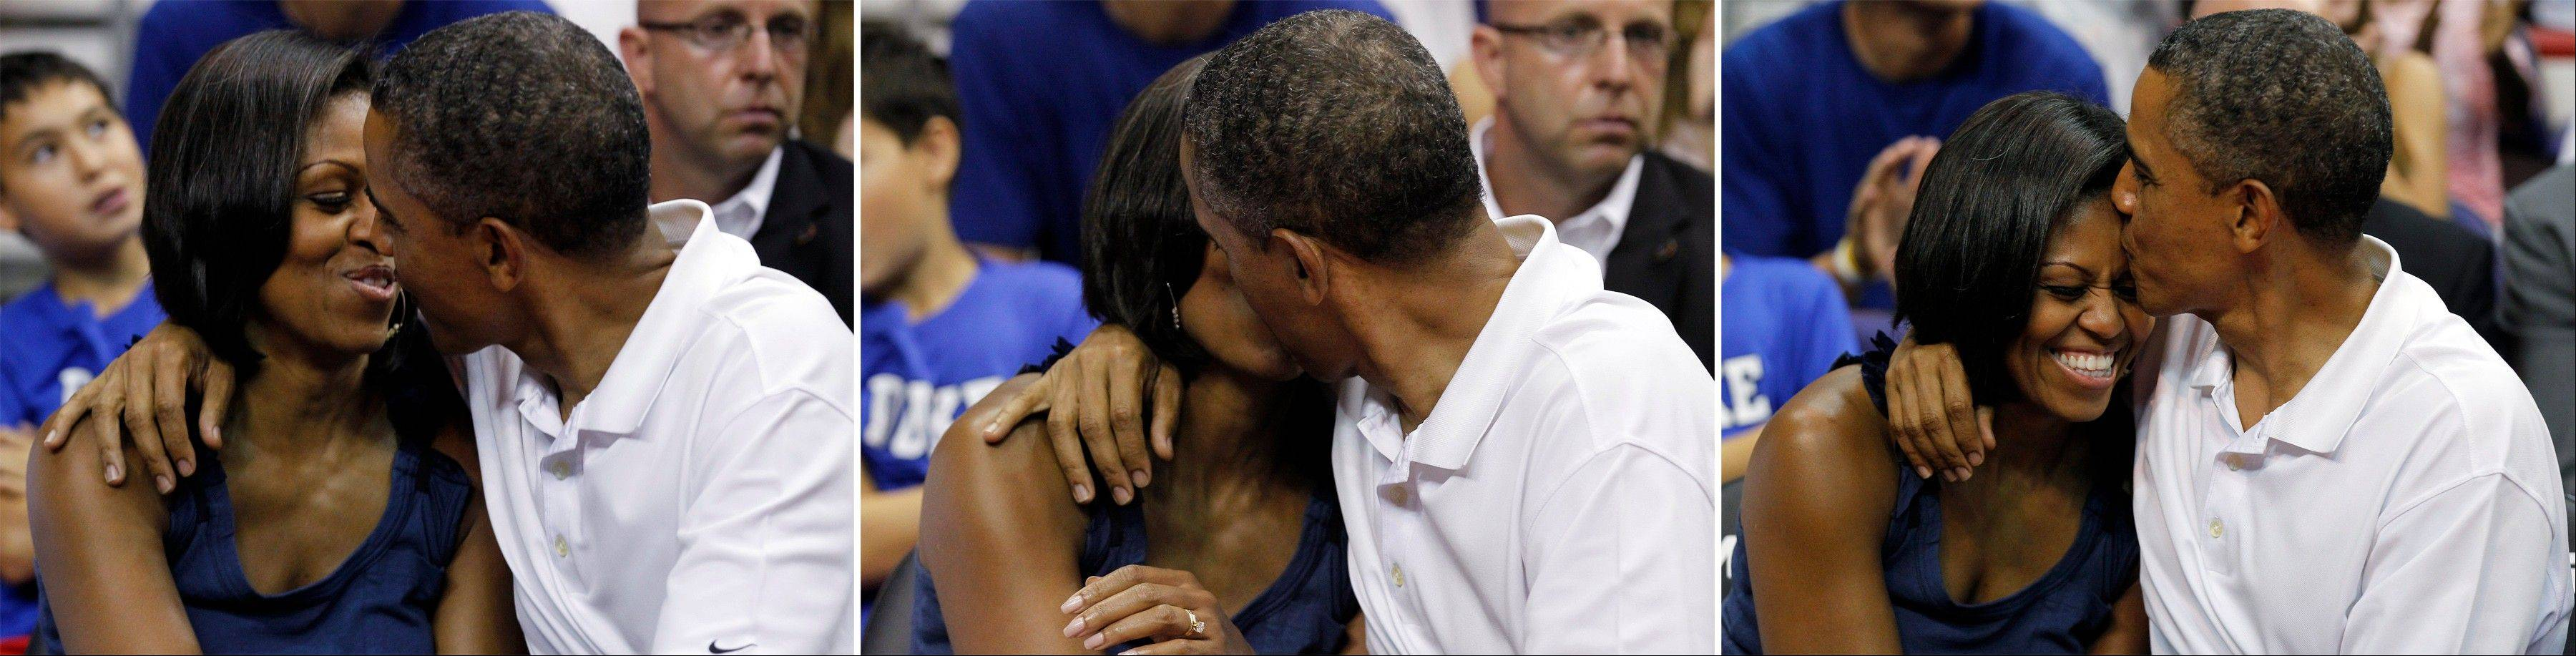 "This photo combination shows a sequence of President Barack Obama kissing first lady Michelle Obama while being shown on the large in-house video screen for the ""Kiss Cam,"" as they watch the second half of an Olympic men's exhibition basketball game between Team USA and Brazil, Monday, July 16, 2012, in Washington. Team USA won 80-69."